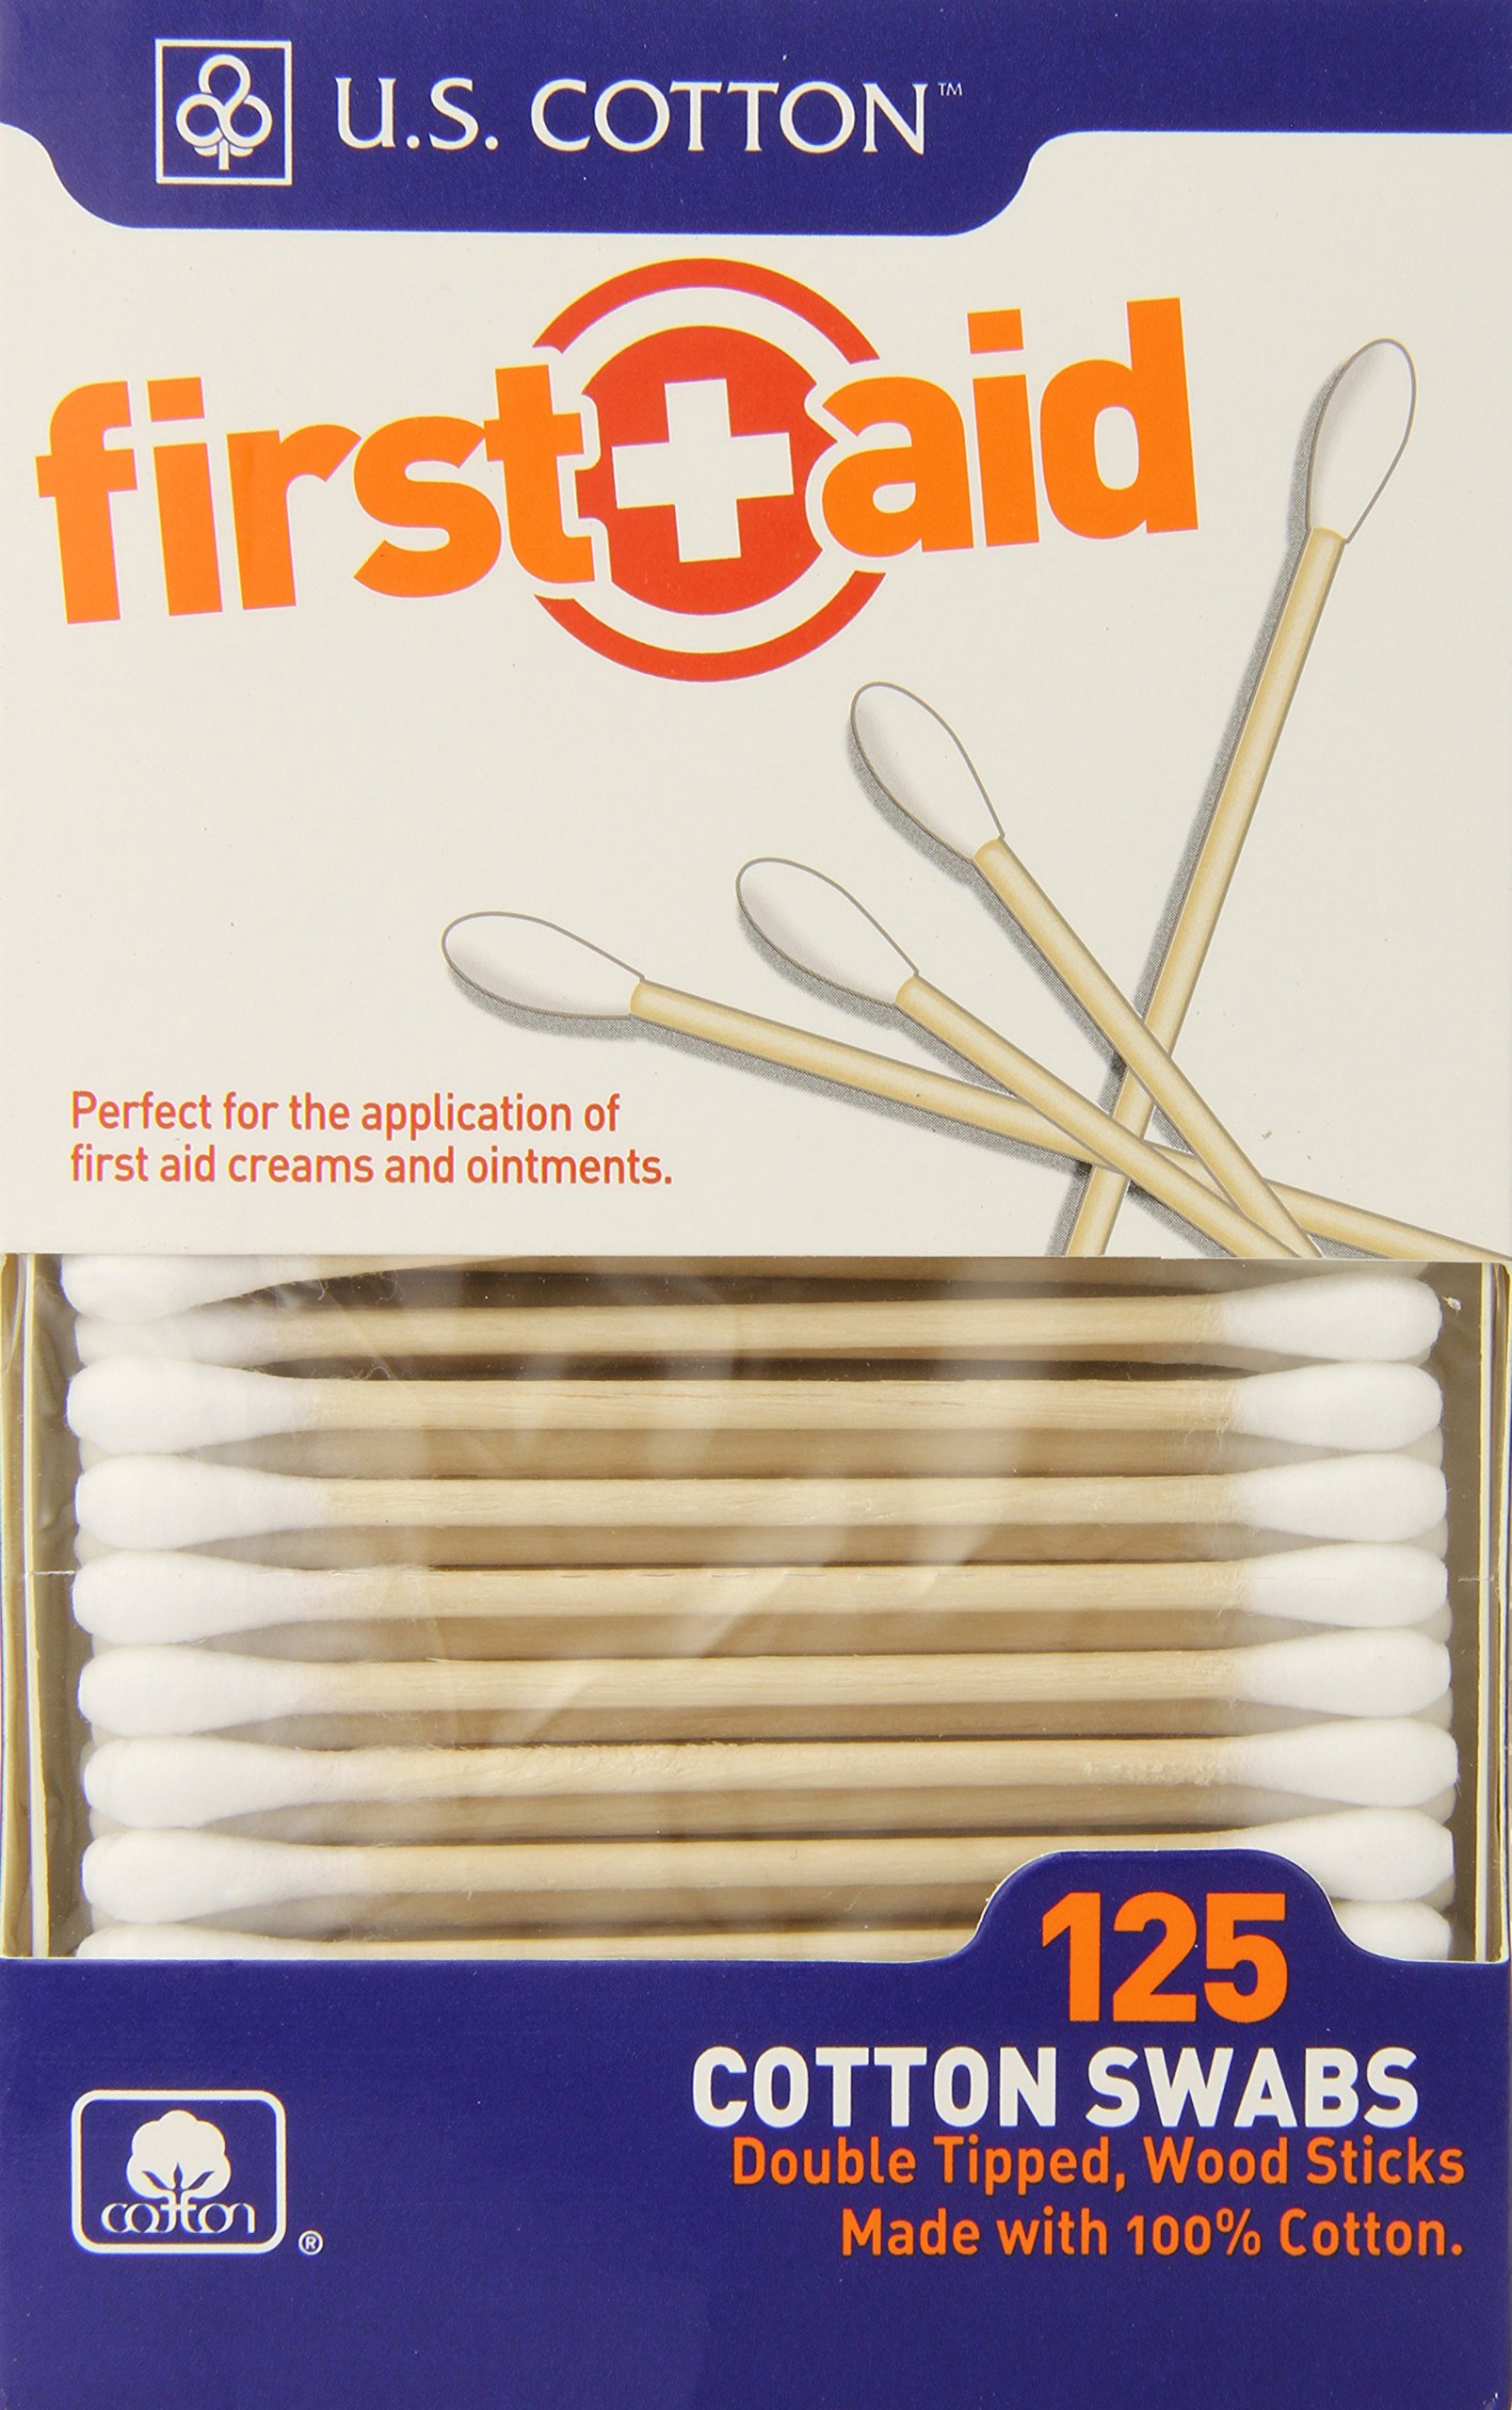 U.S. Cotton First Aid or Baby Sterile 100% Cotton Swabs, Wood Stick, 125 Count Boxes (Pack of 6 Boxes)